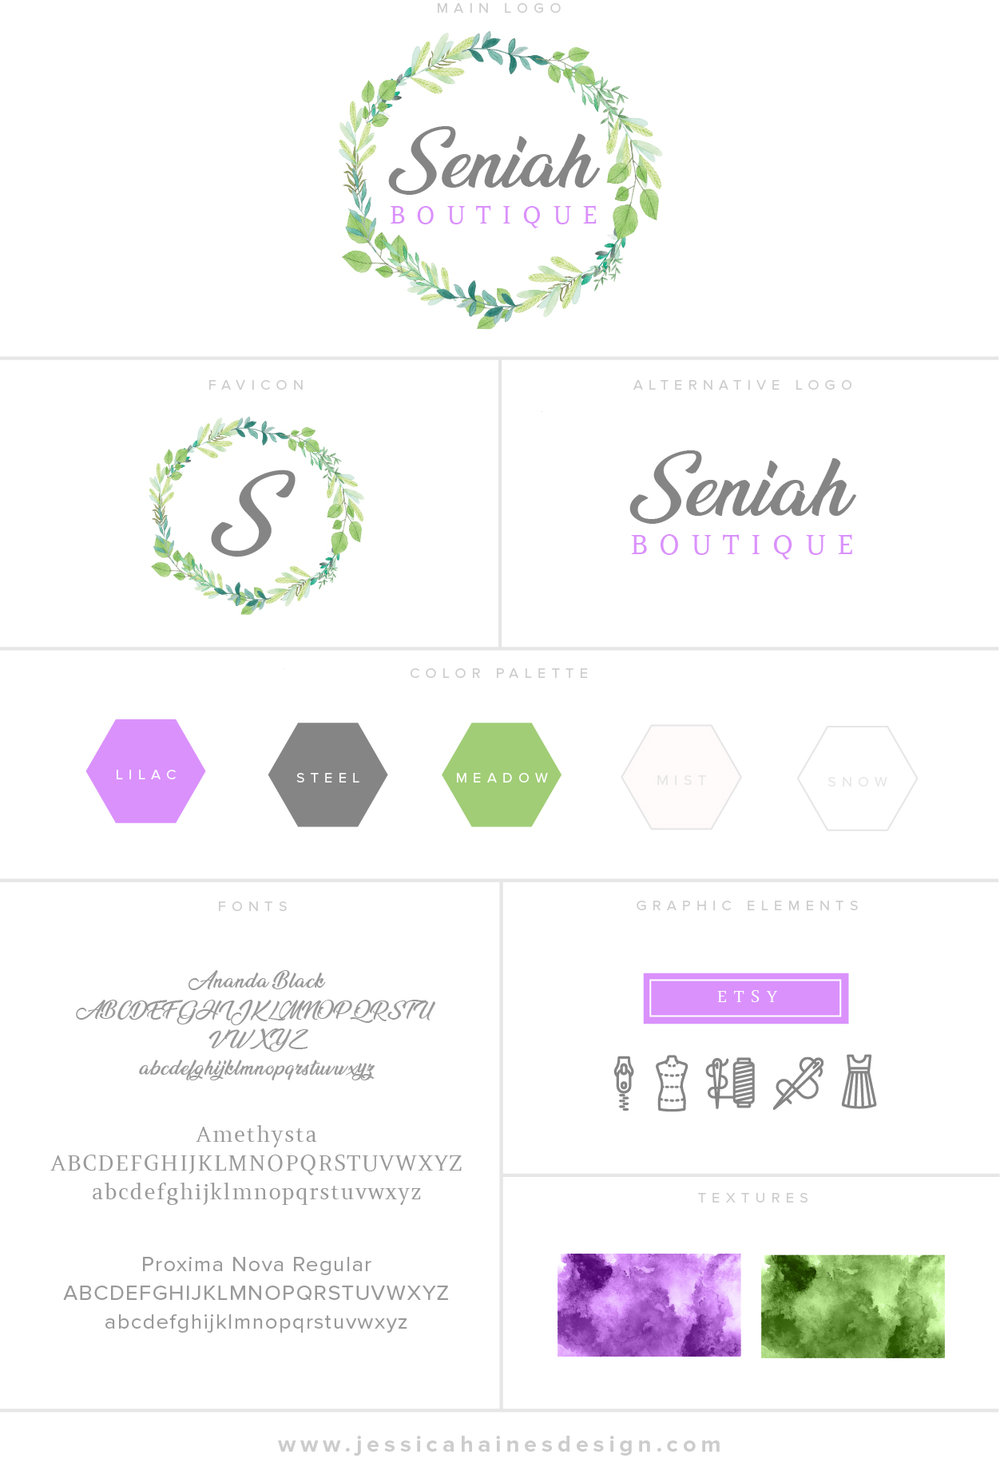 Seniah Boutique Branding Style Board with logo, alternate logo, favicon, color palette, fonts, graphic elements and textures. Created by Jessica Haines Design